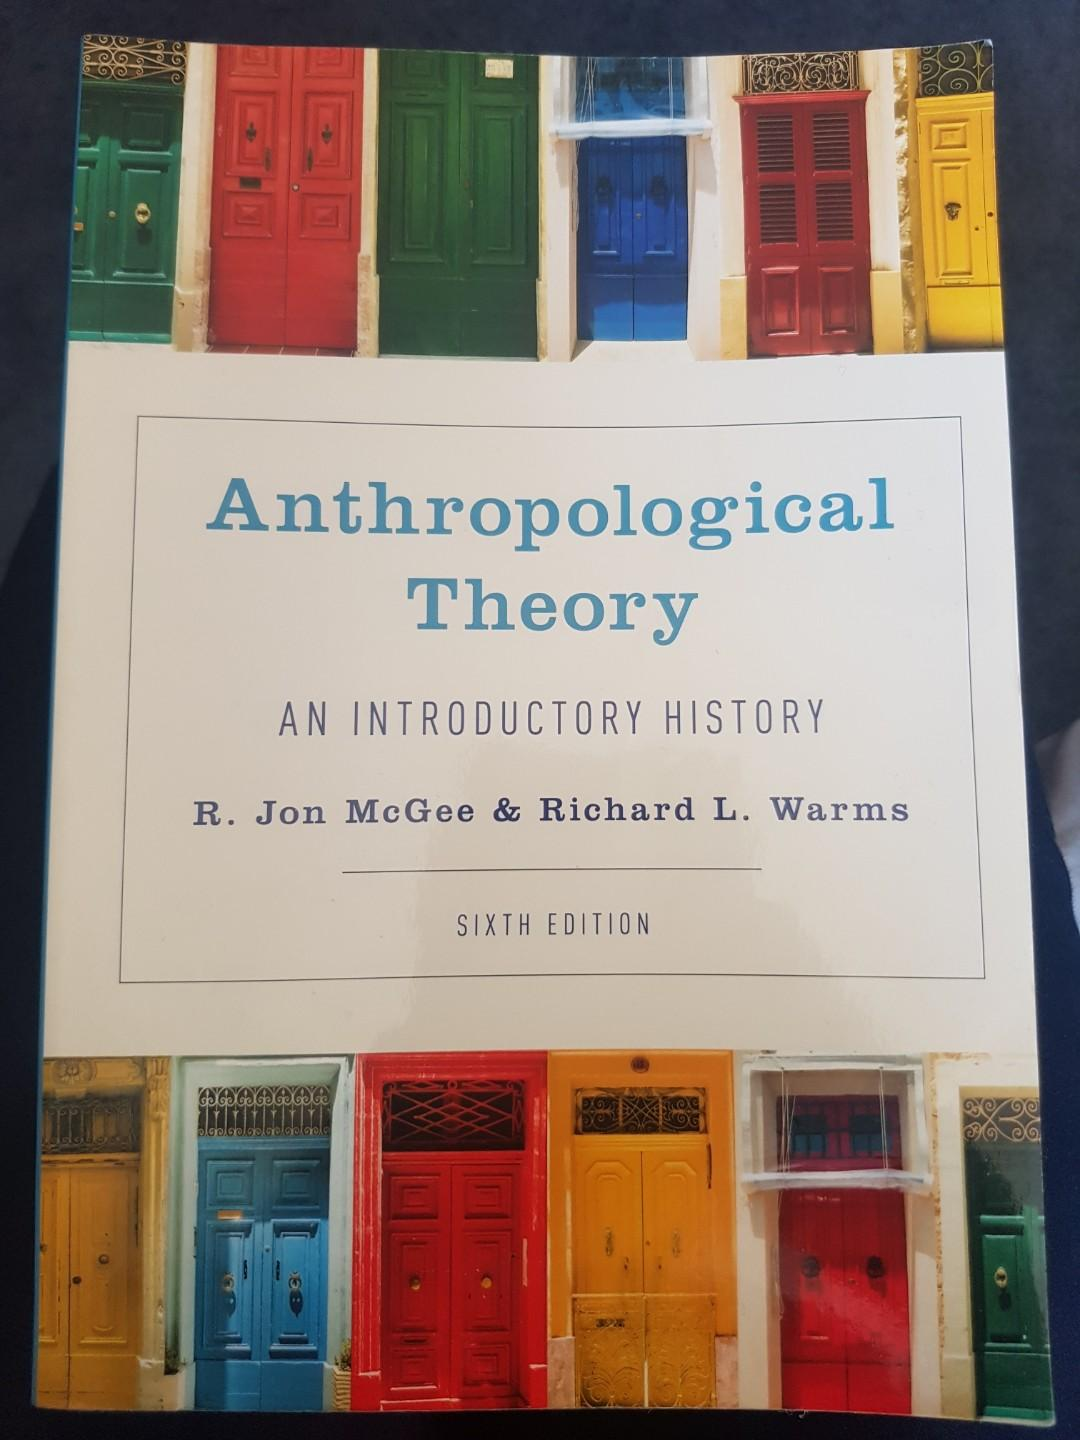 Anthropological Theory: An Introductory History - Anth 361